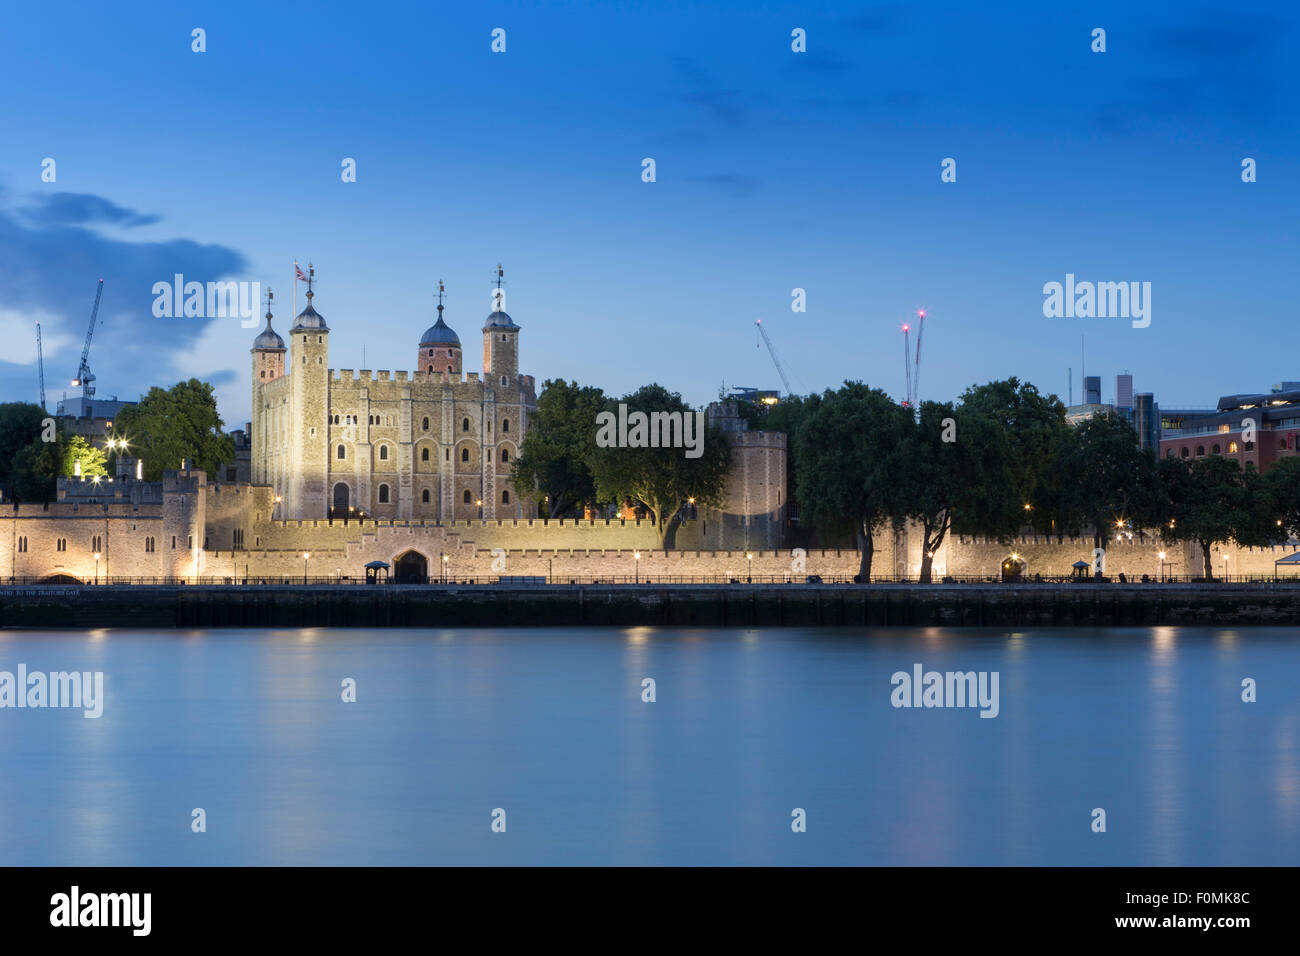 The Tower of London, London castle, royal palace and medieval prison in London, England - Stock Image